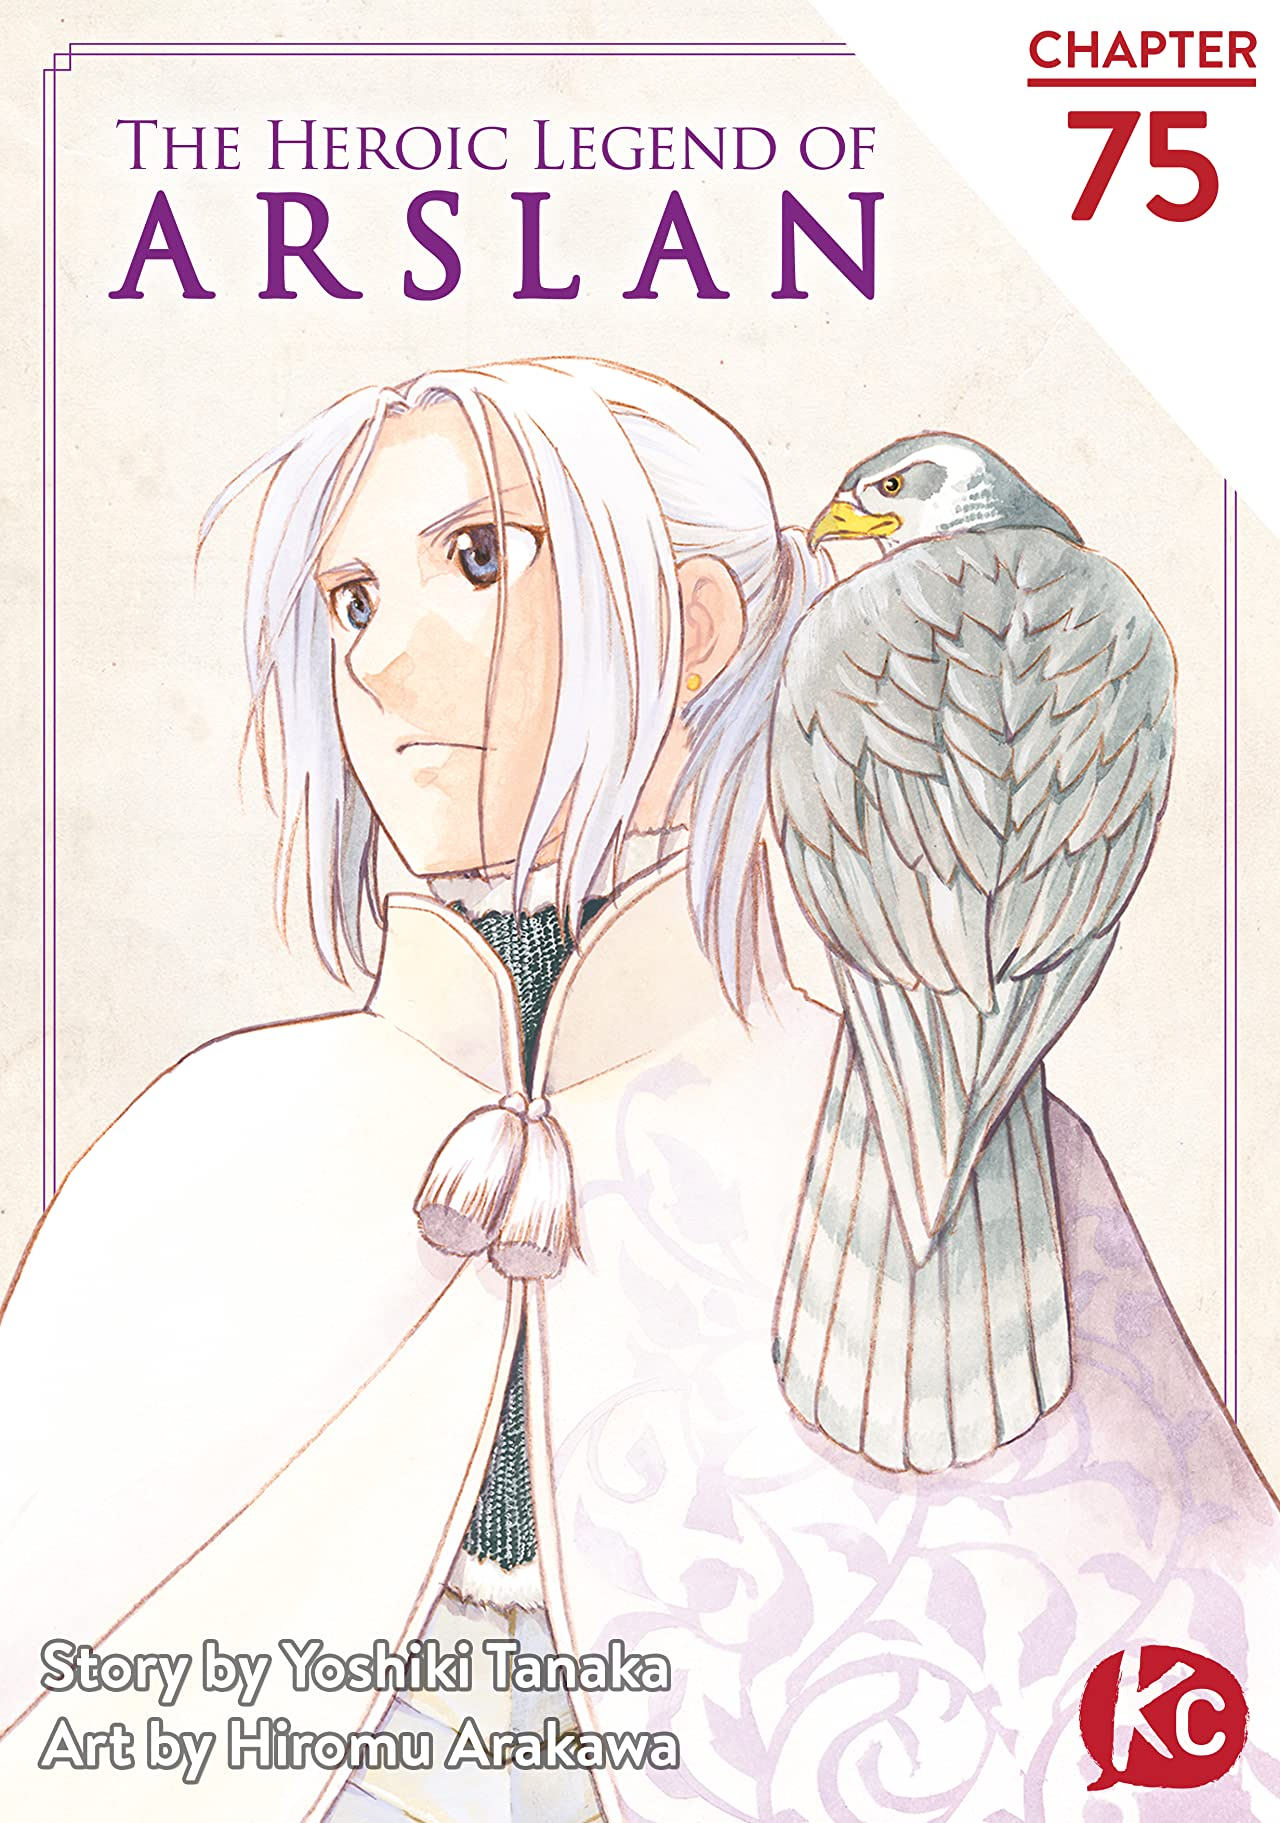 The Heroic Legend of Arslan #75